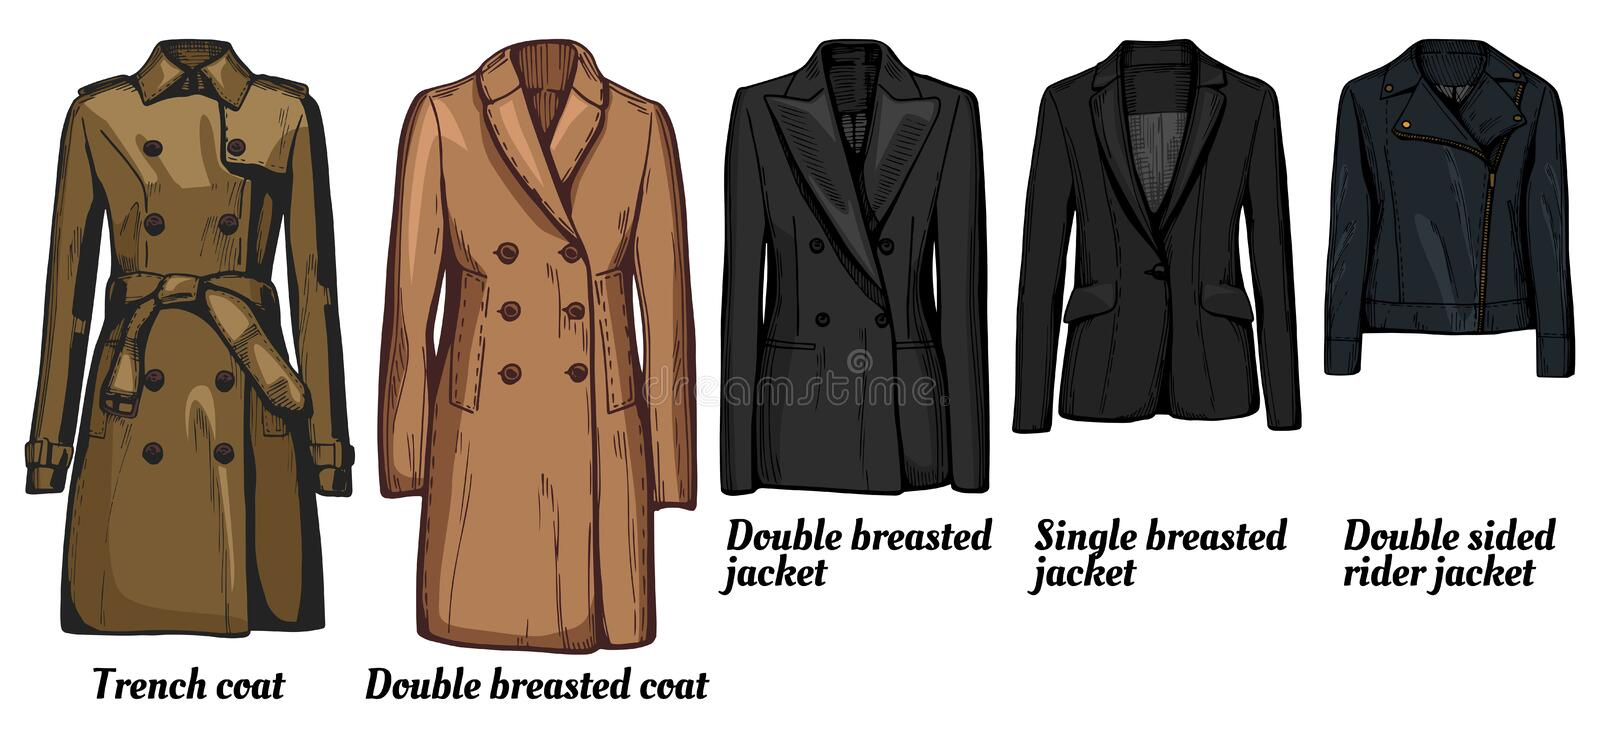 Womens jackets types set. Vector illustration of womens jackets types set. Trench coat, classic double breasted wool cashmere coat, double and single breasted vector illustration